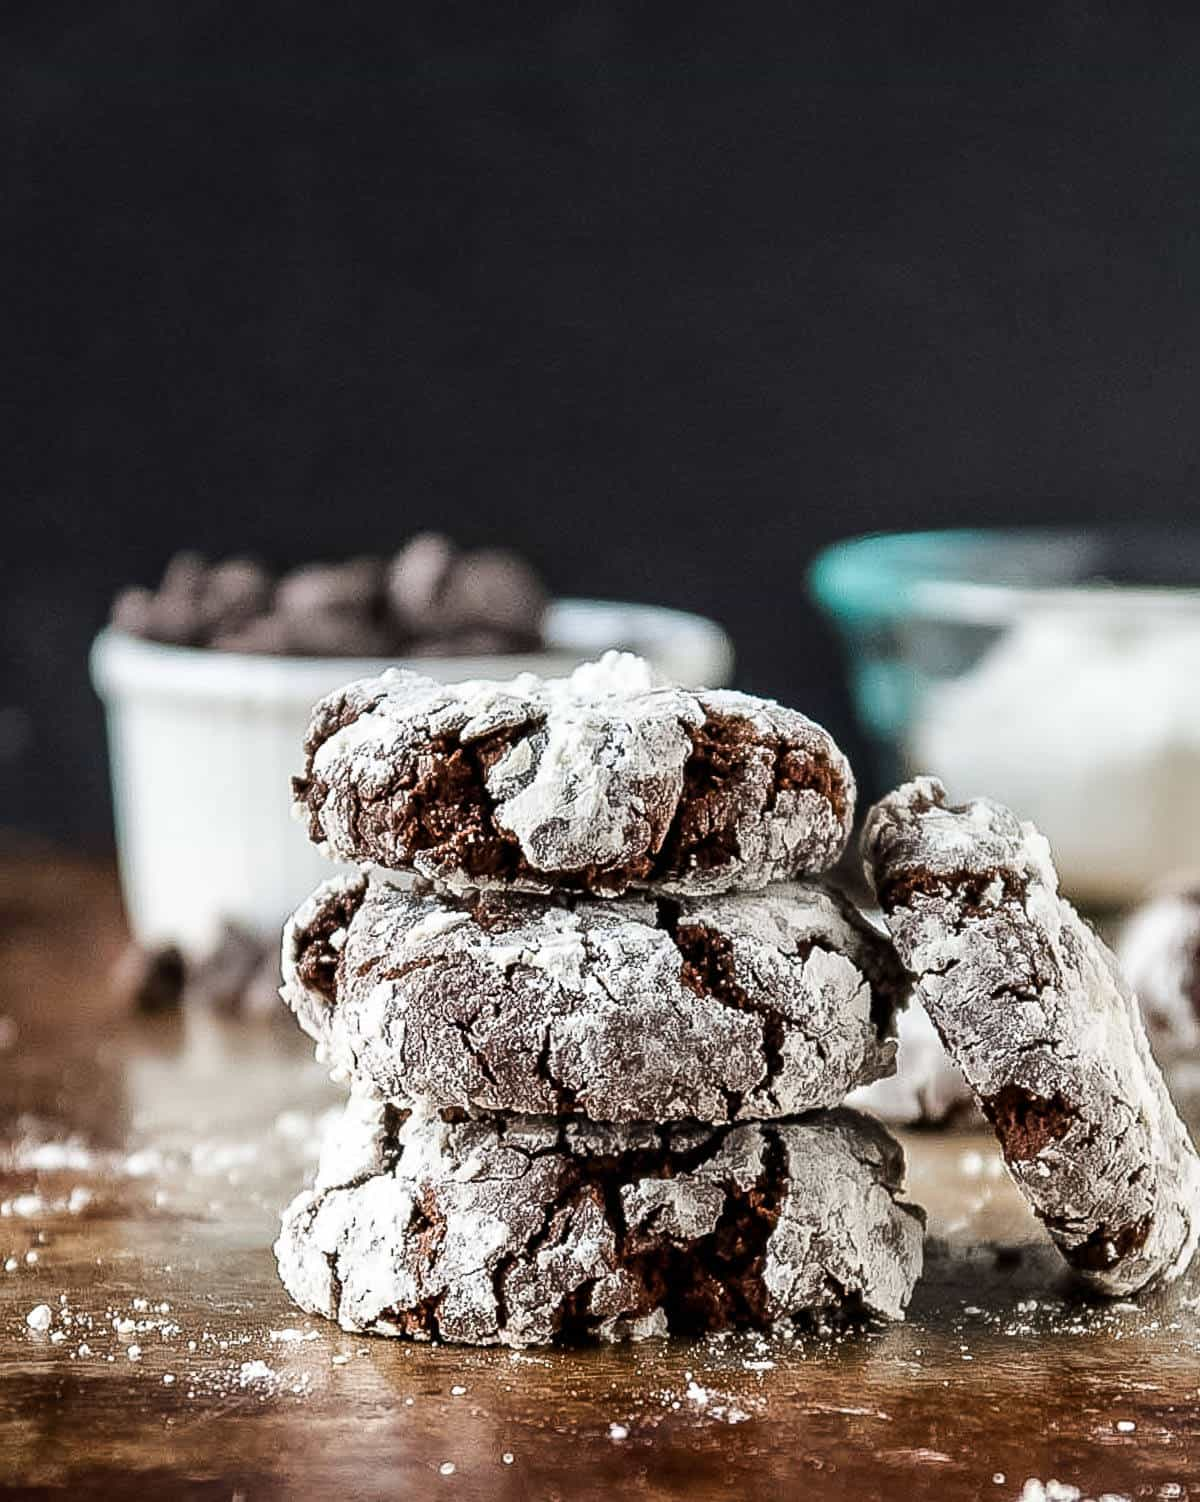 Crispy on the outside and gooey on the inside, these vegan chocolate crinkle cookies are the perfect ultra chocolaty cookie!